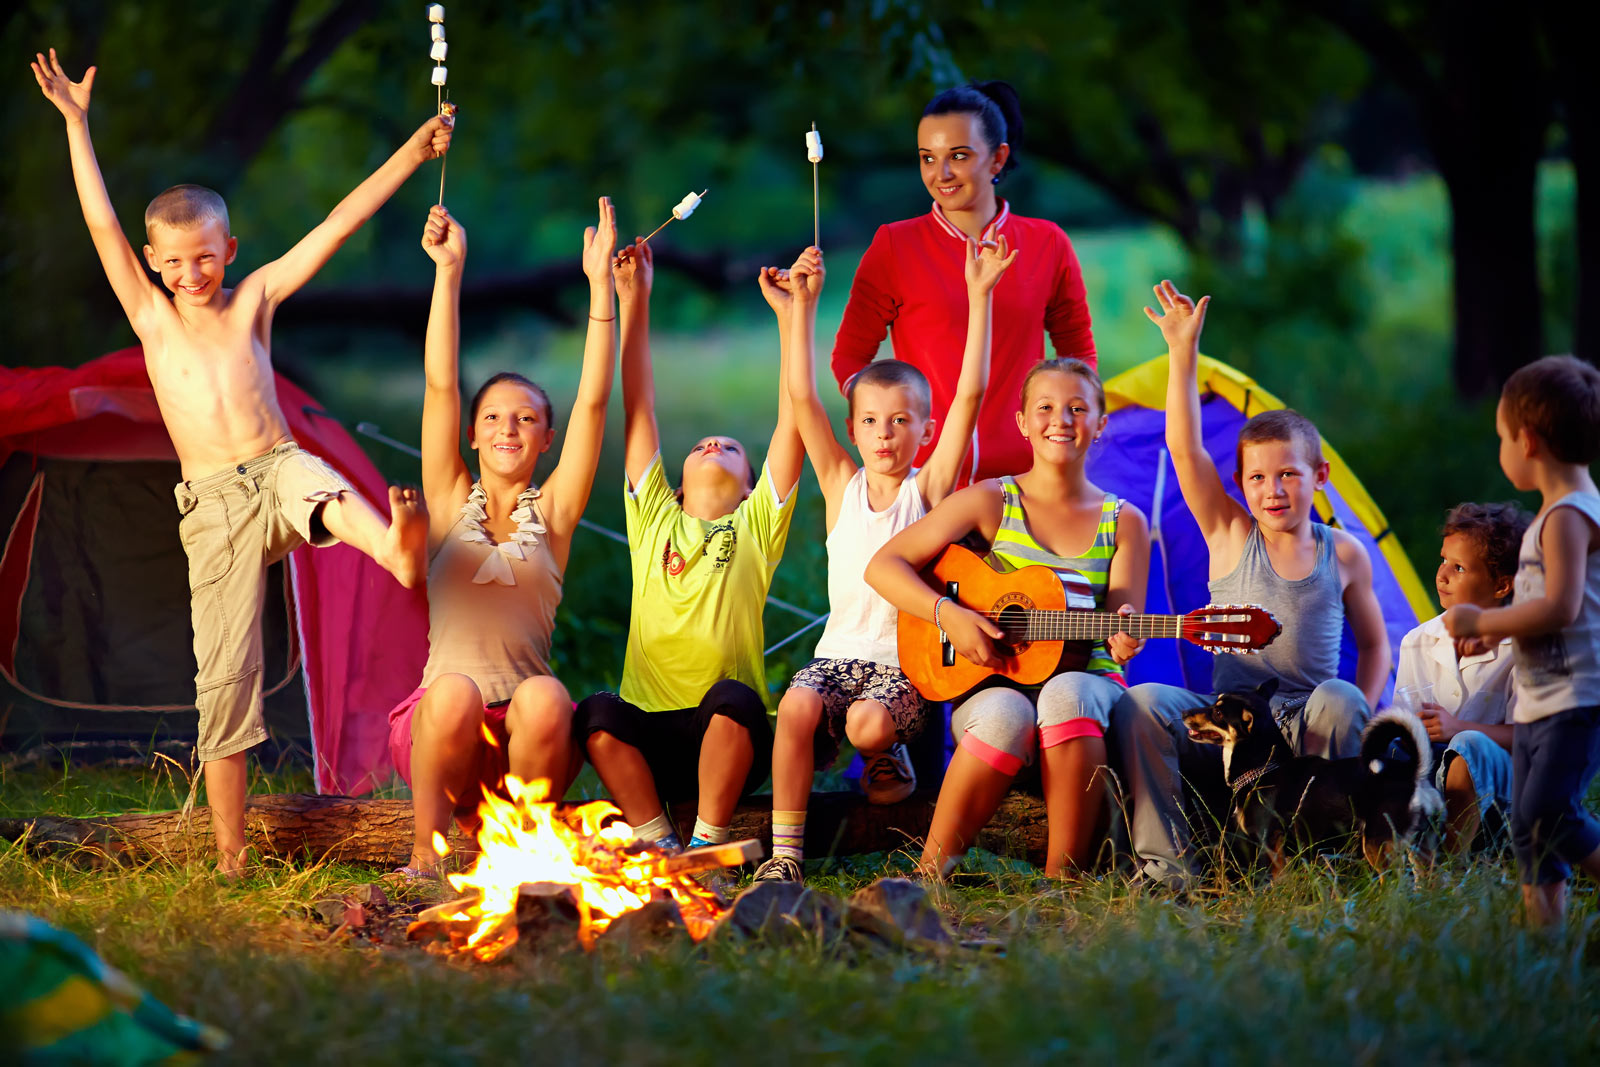 10 Tips for Choosing the Perfect Summer Camp for Your Kids